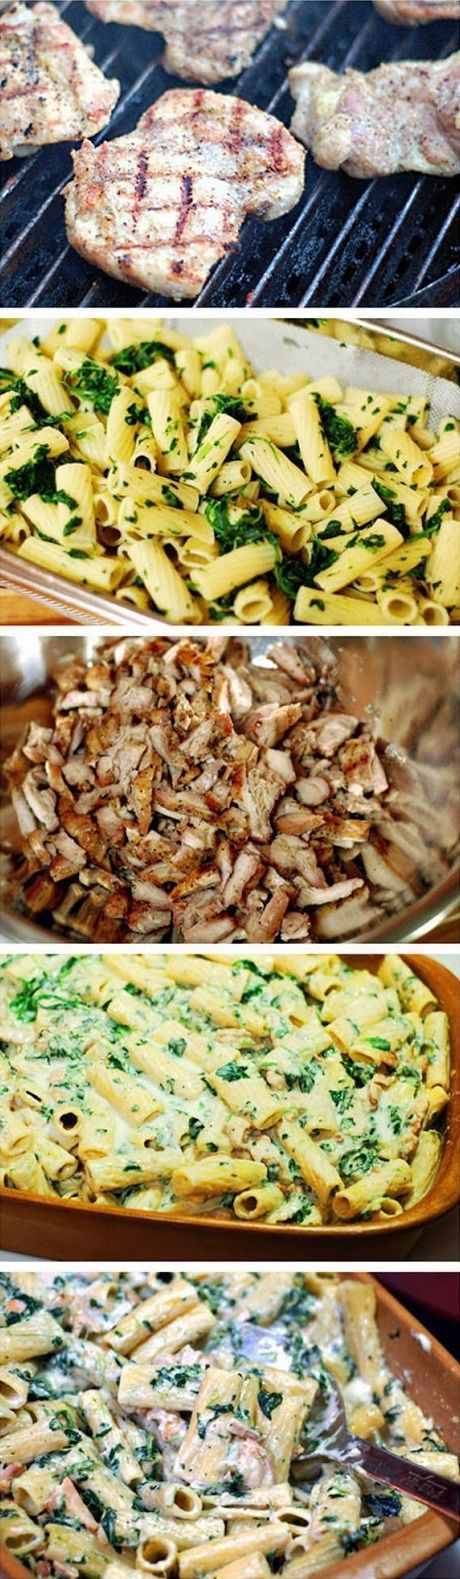 Grilled Chicken Rigatoni Florentine Recipe  (looks good but too much work??)